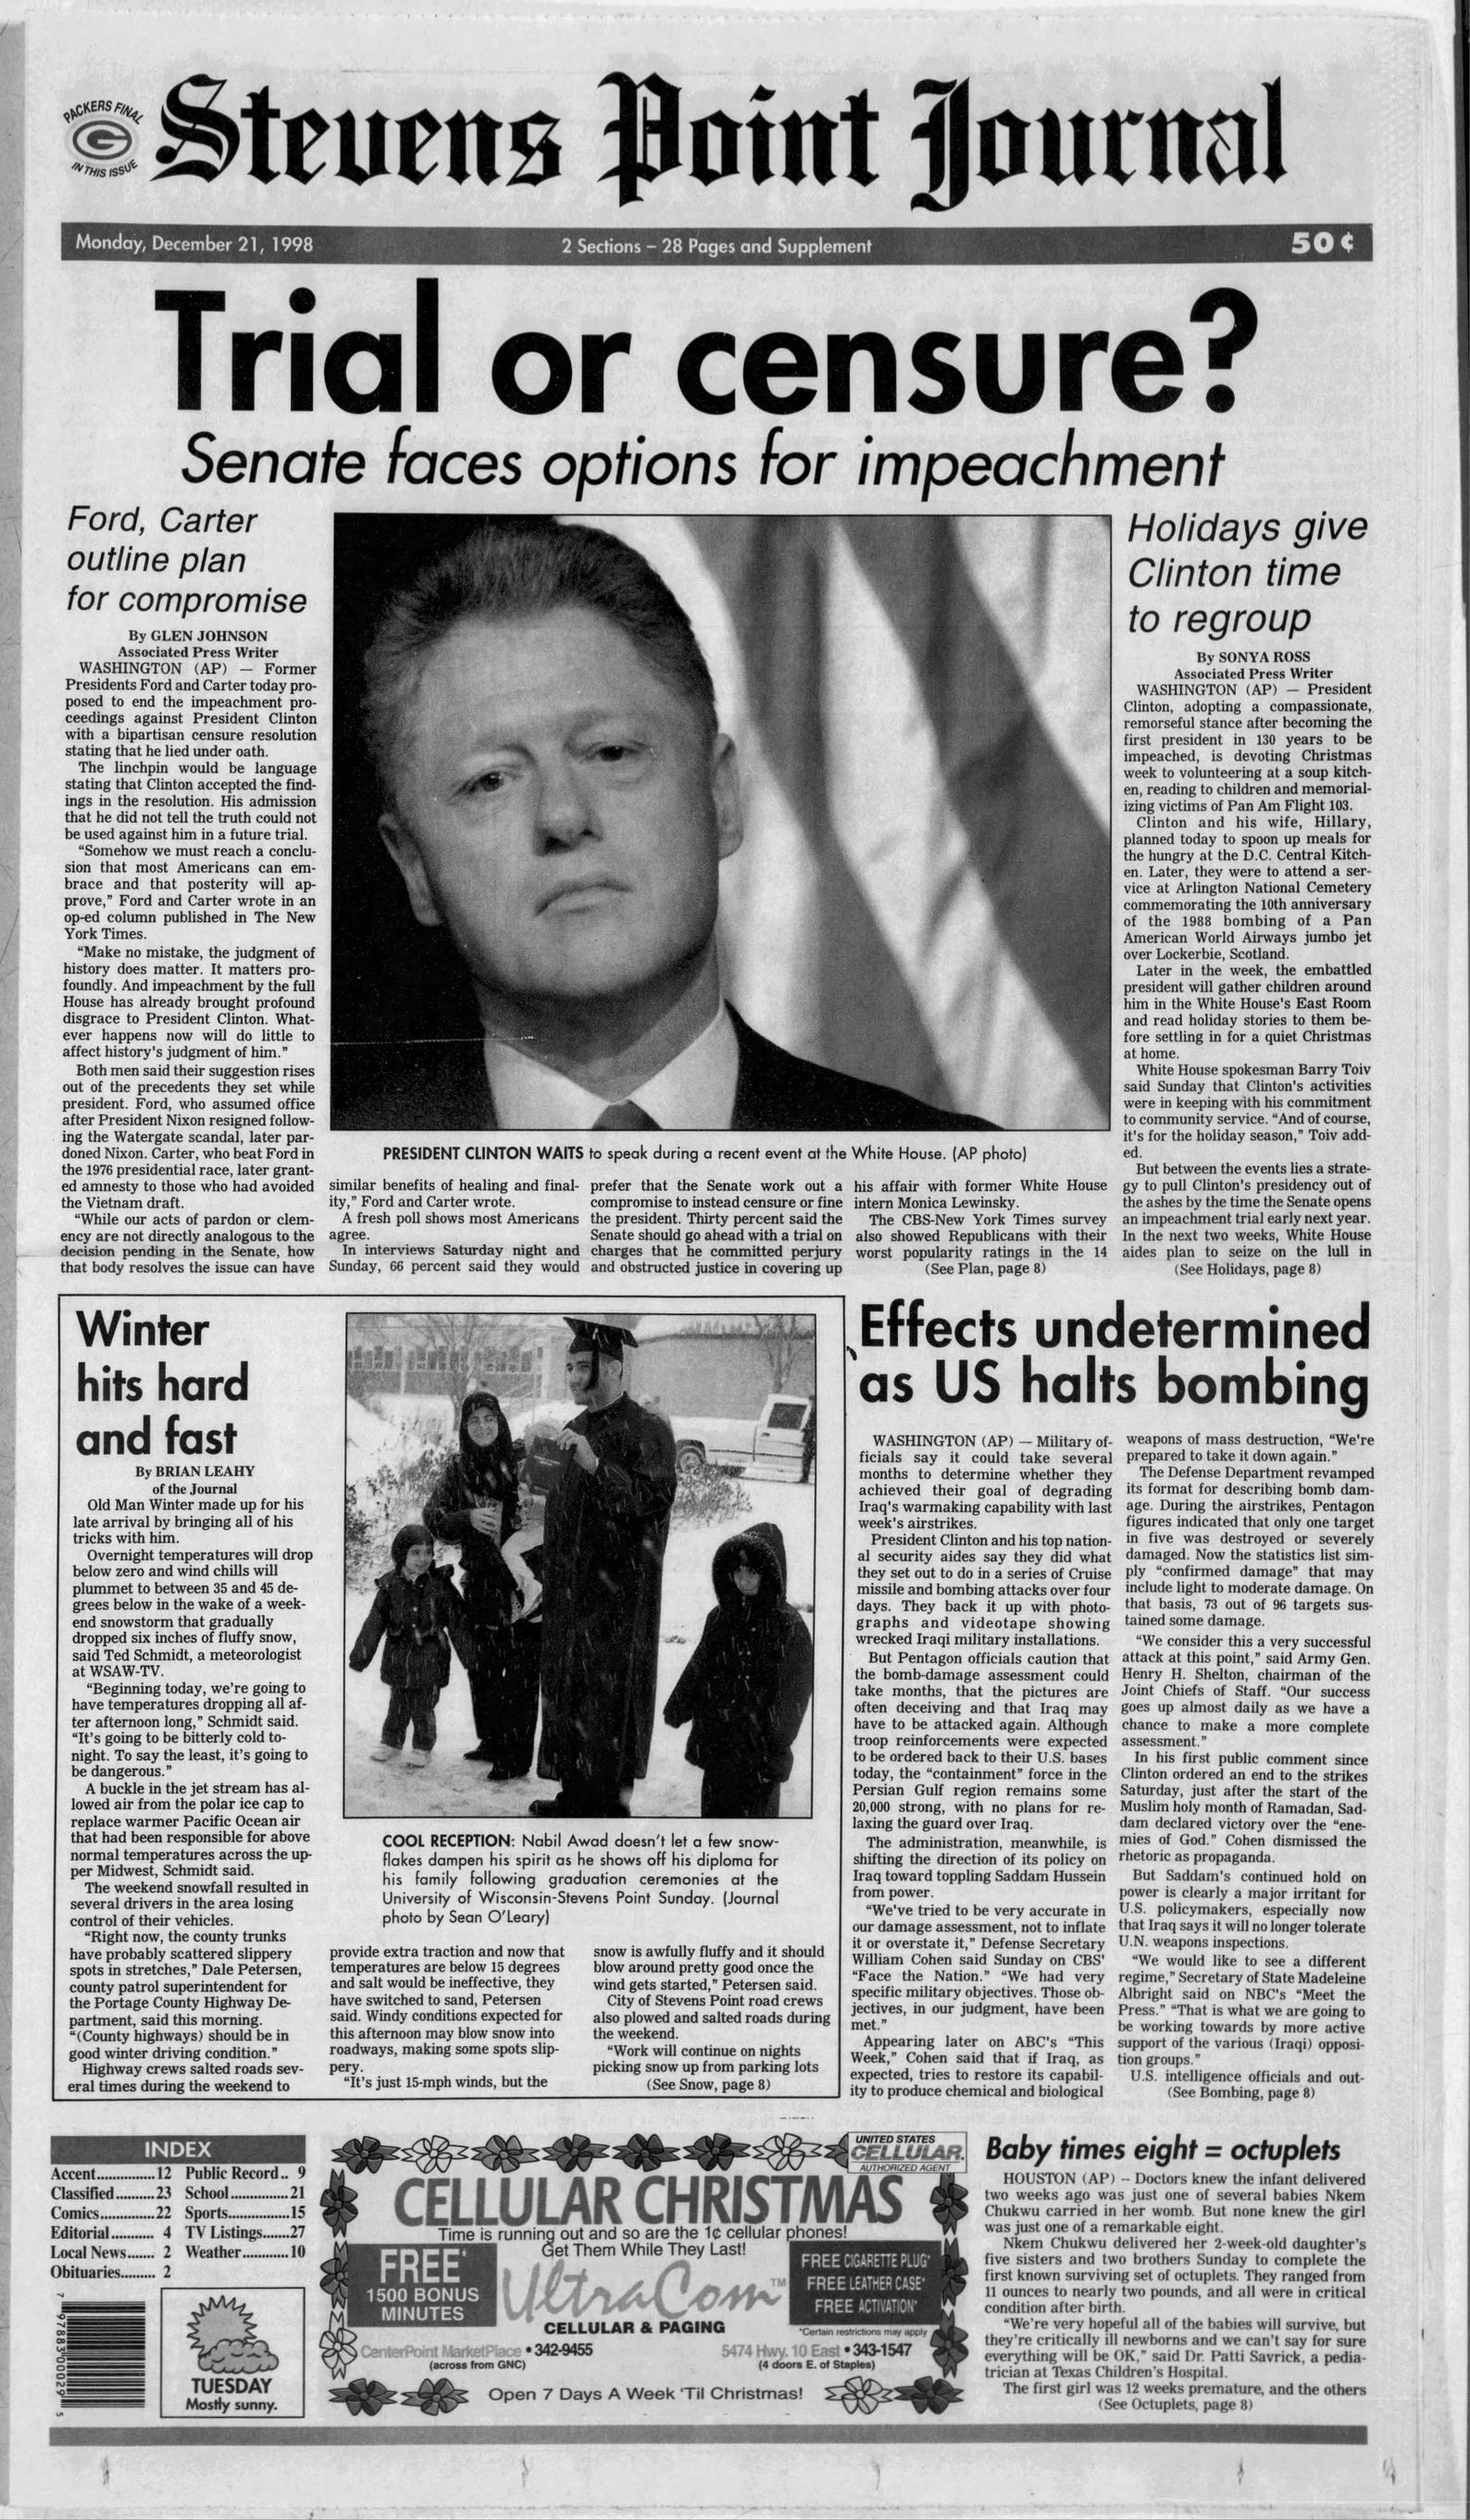 Bill Clinton Impeached See The Front Pages From 20 Years Ago